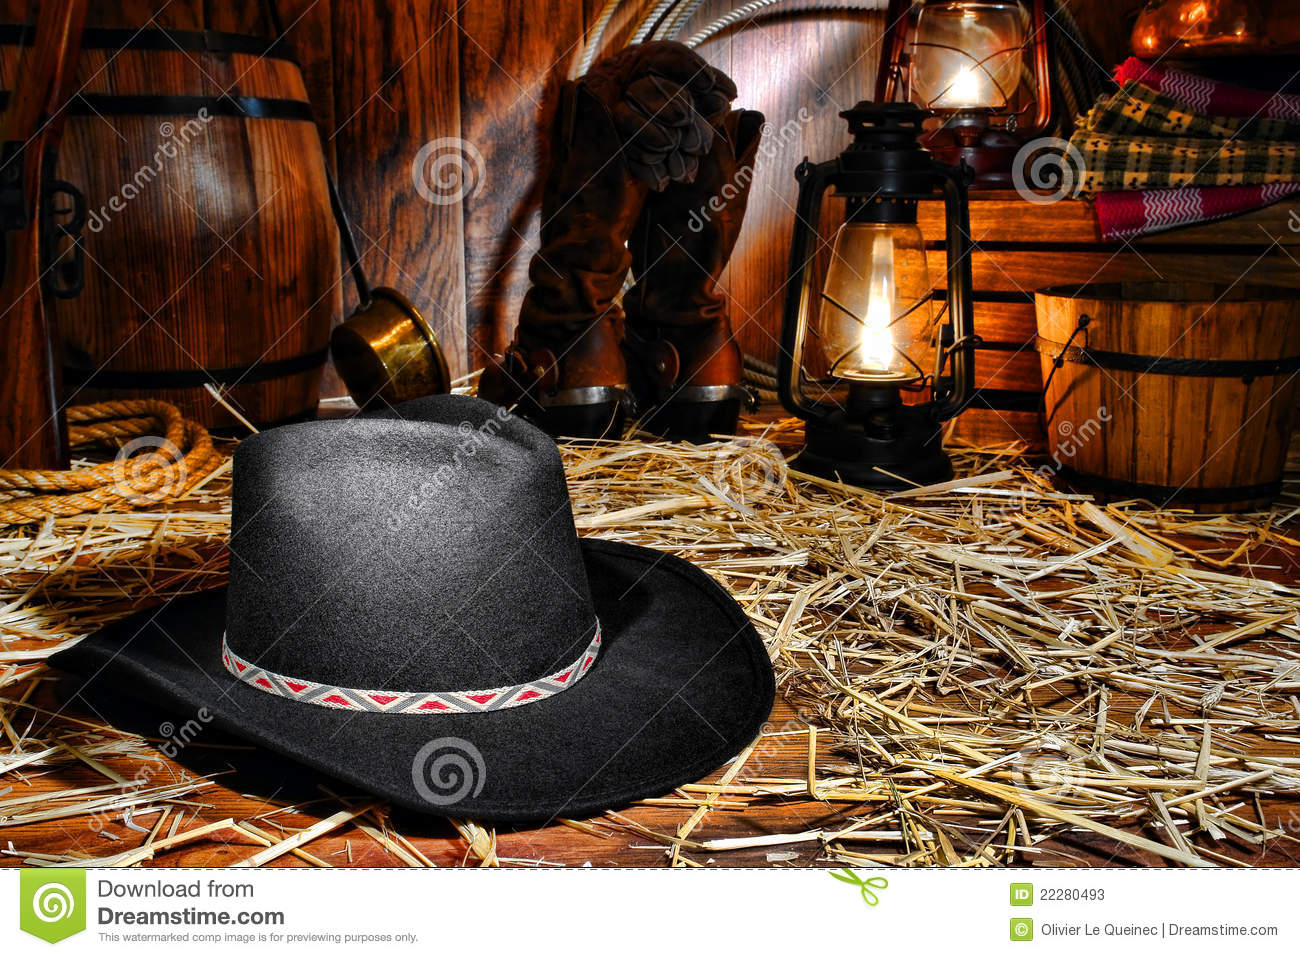 American West Rodeo Cowboy Hat In Old Western Barn Stock